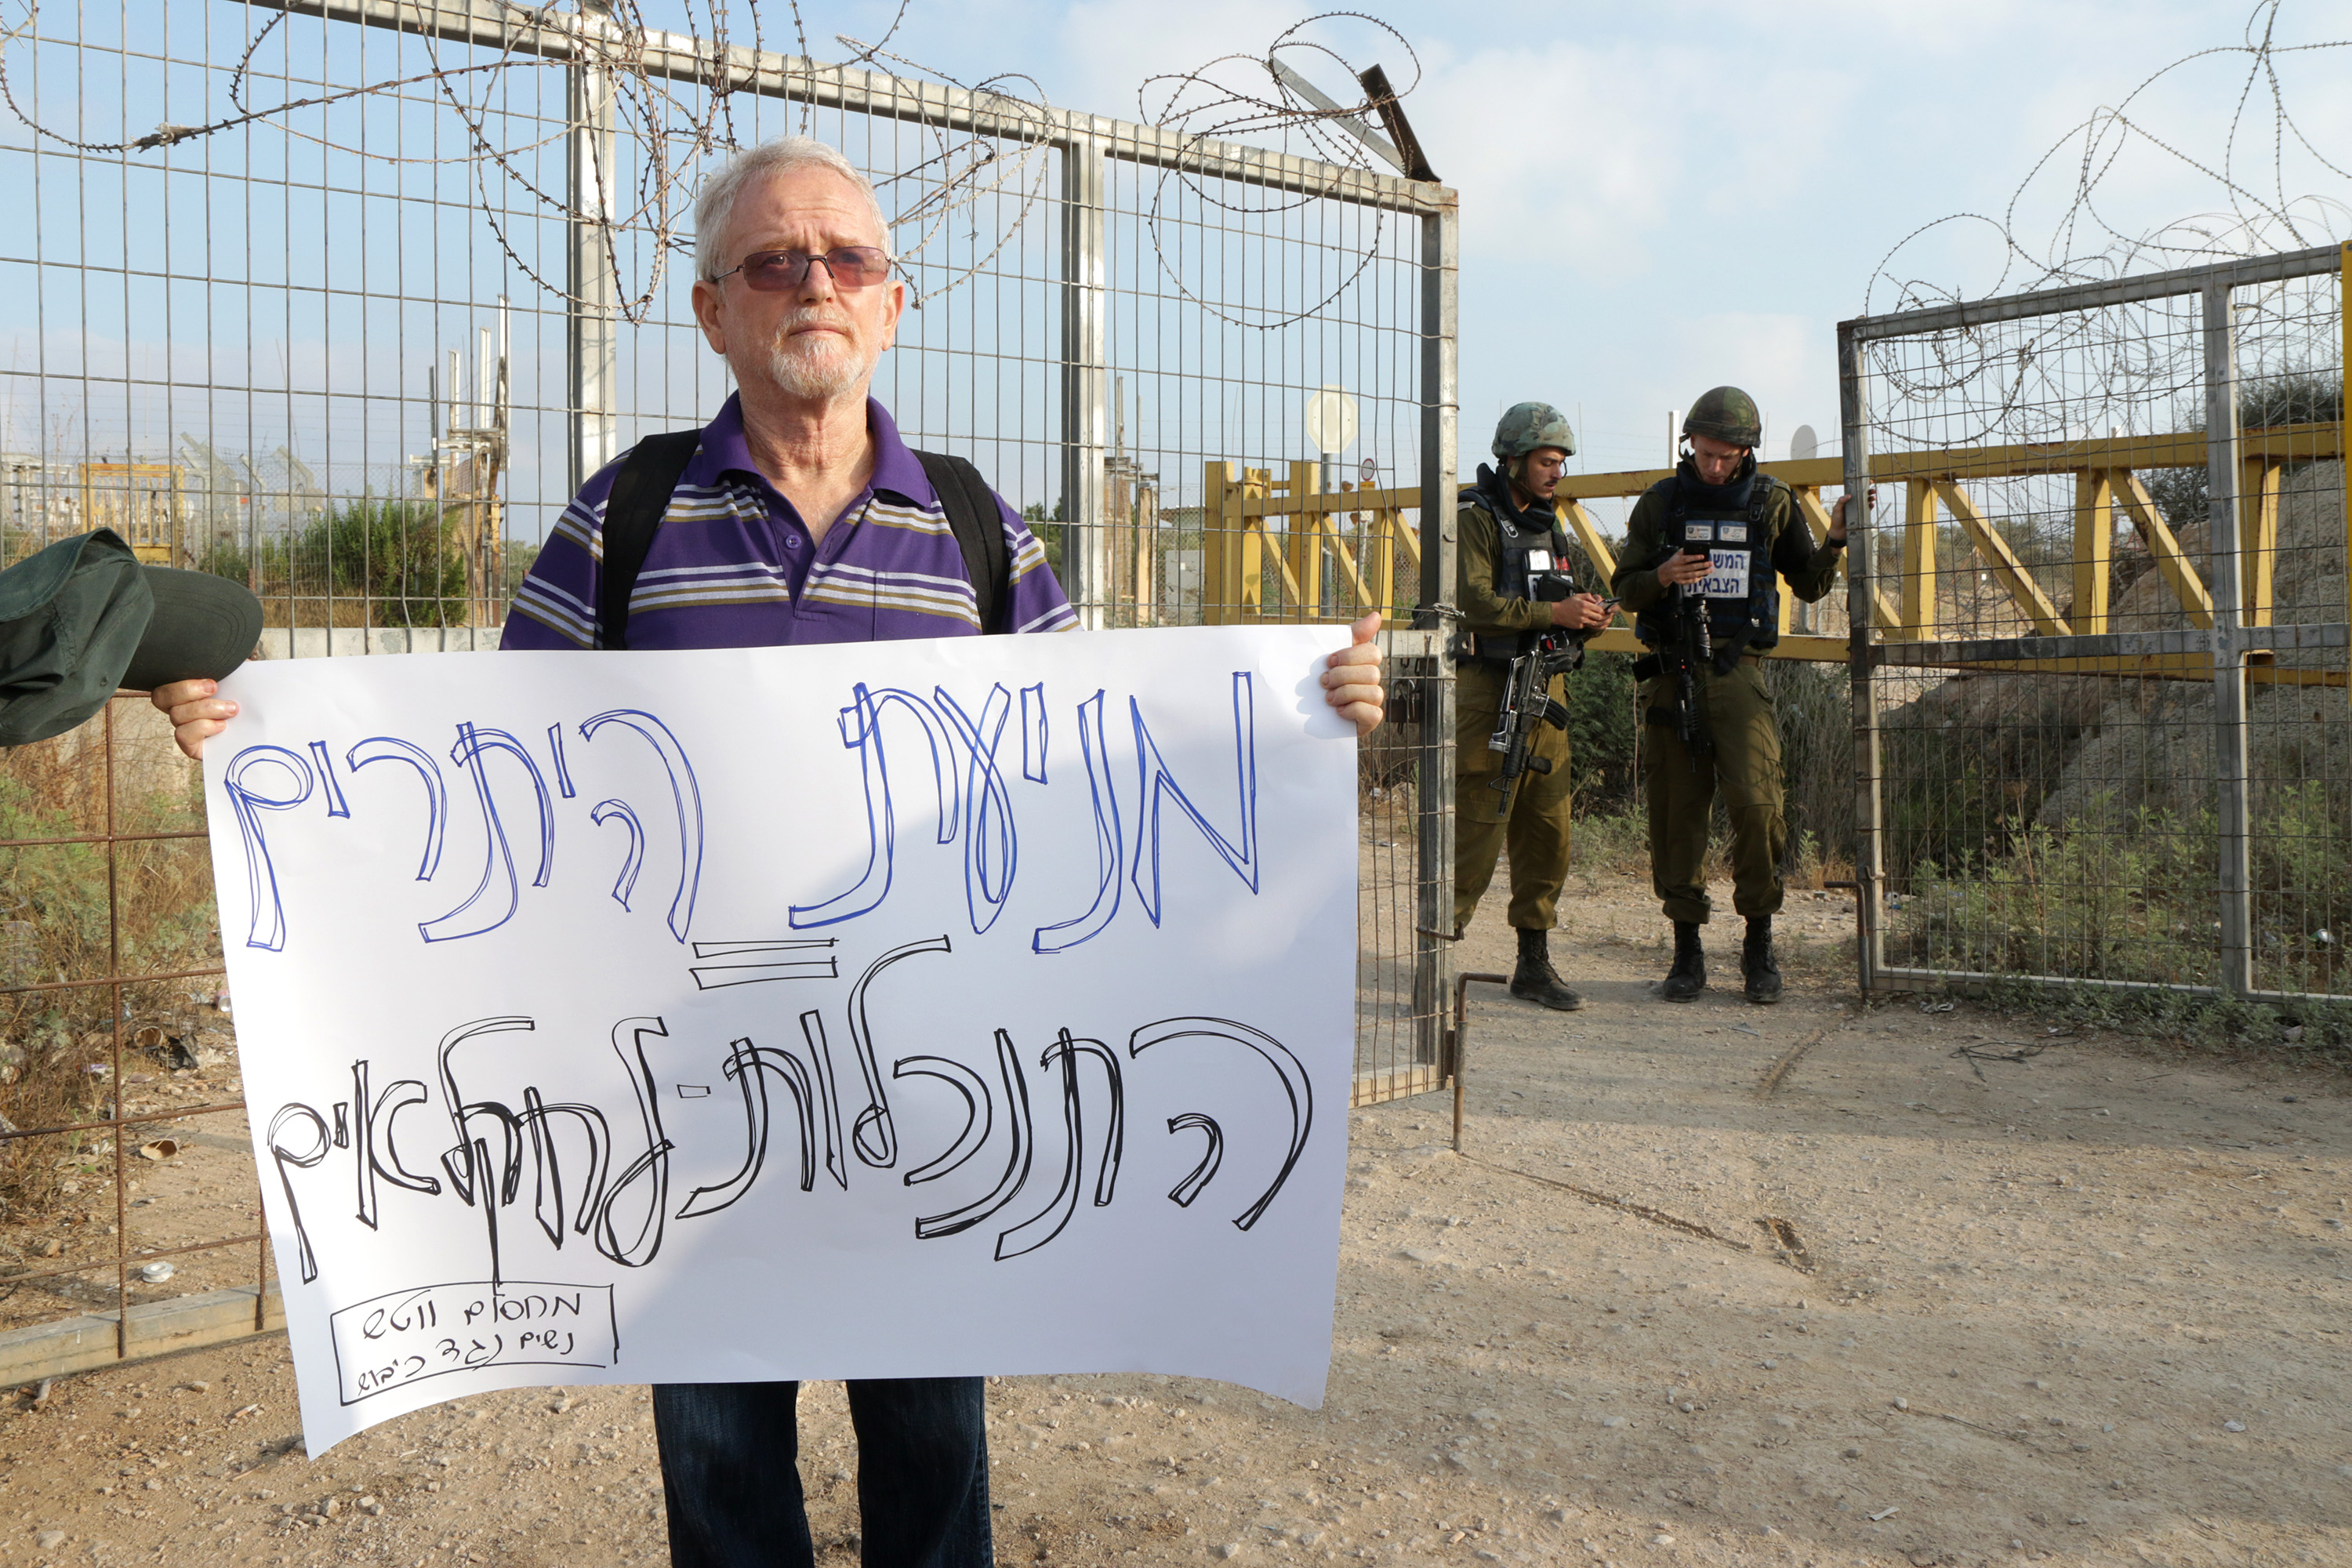 An Israeli demonstrator stands in front of Military Gate 623 during a protest to ease entry and exit for Palestinian farmers, Palestinian farmers negotiate with Israeli soldiers at a military gate in the northern West Bank, demanding the Israeli army ease restrictions to allow them to more easily enter and exit, Deir Al Ghusun, July 9, 2017. (Ahmad al-Bazz/Activestills.org)